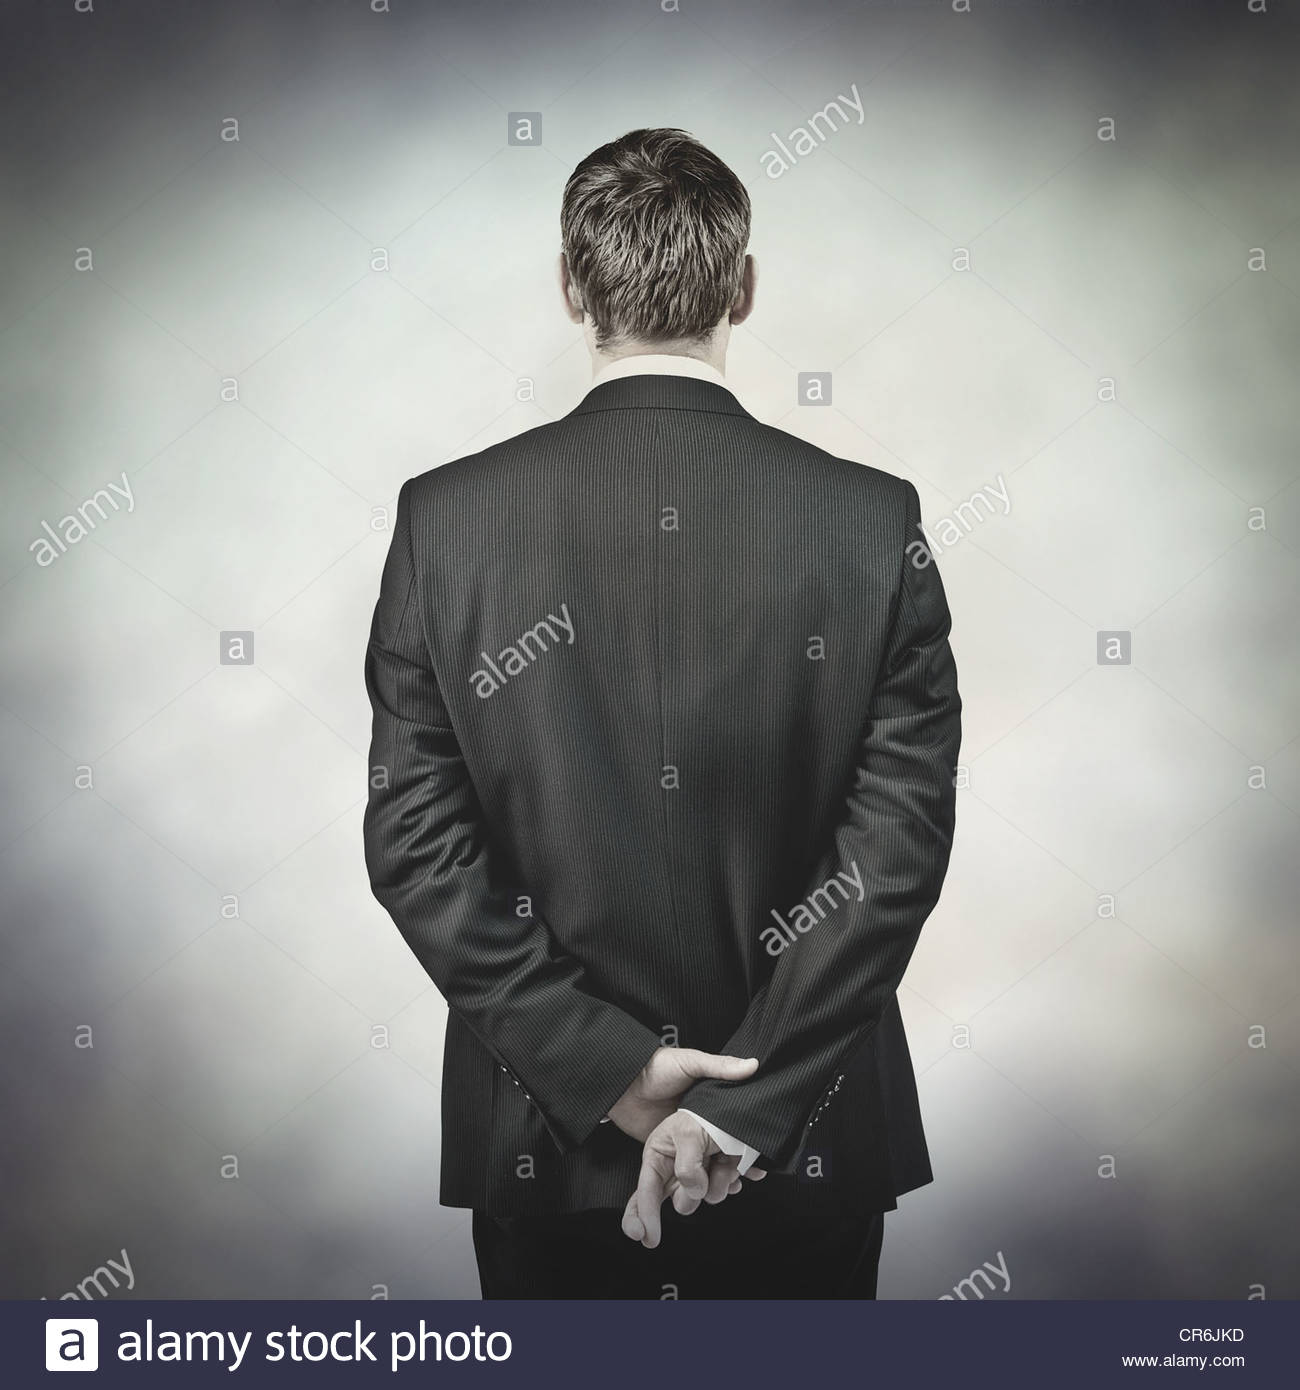 fingers crossed behind back - Stock Image